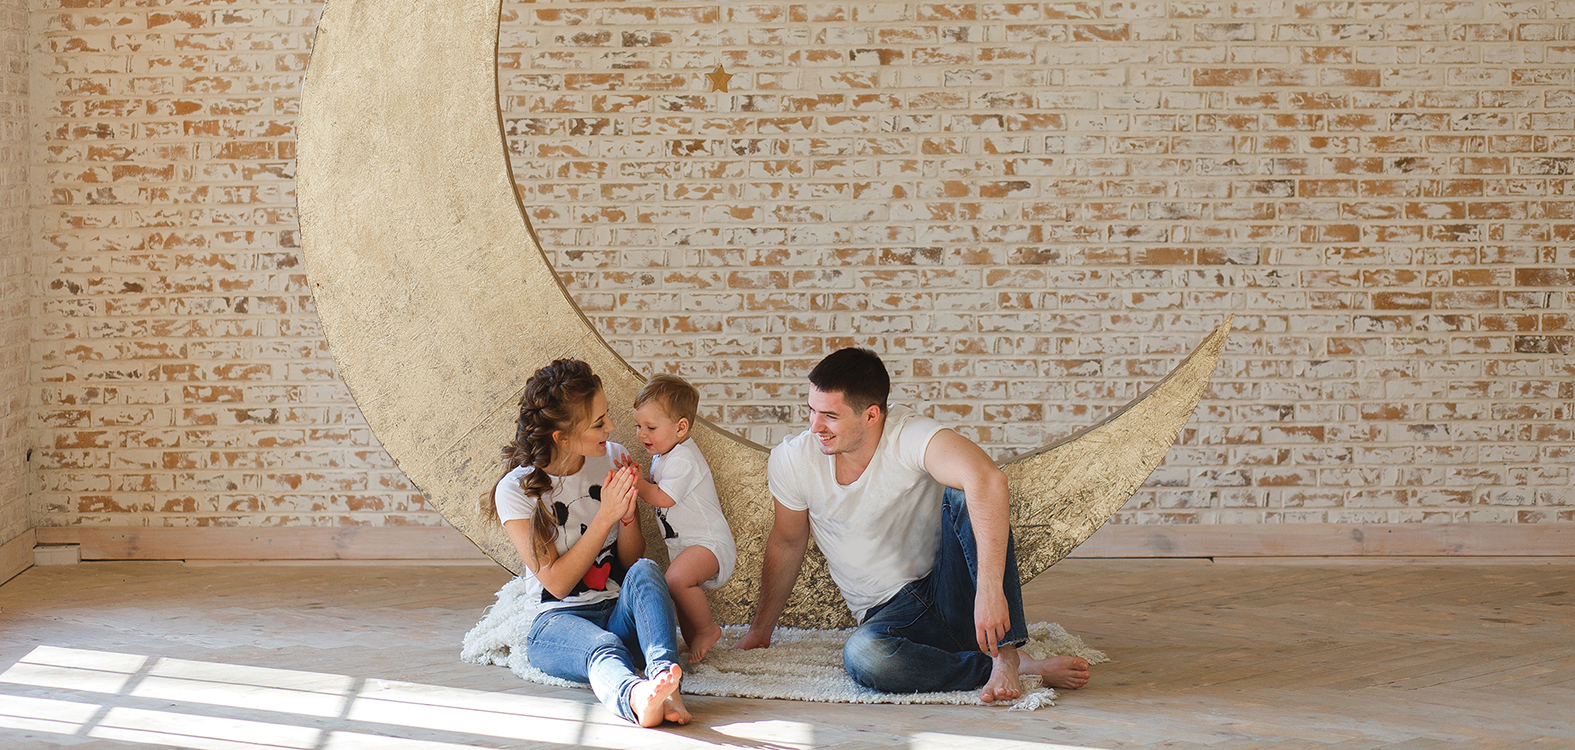 Happy family father, mother and child son near a blank brick wall in the room. Big moon on background.